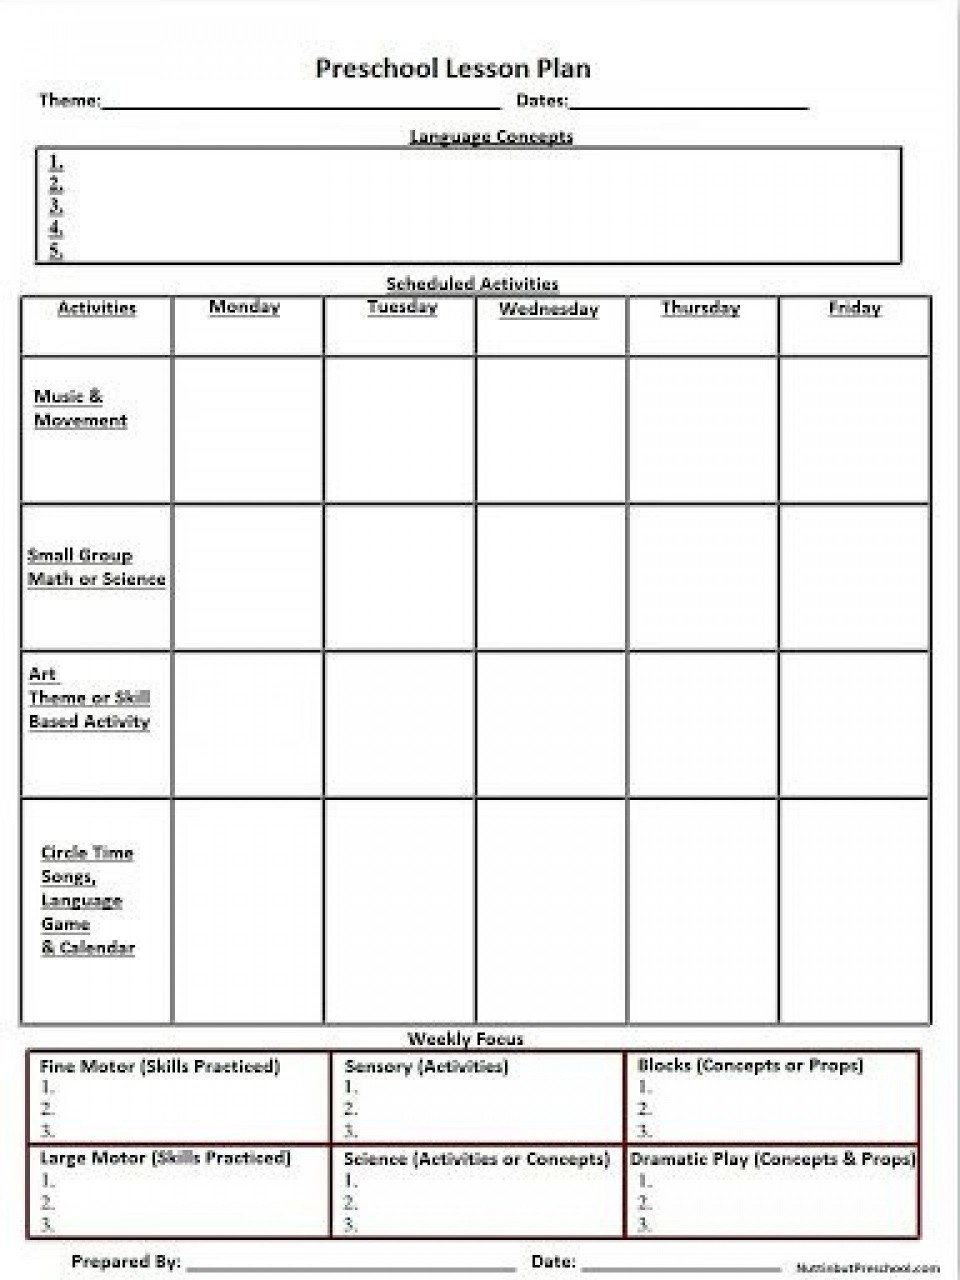 007 Shocking Weekly Lesson Plan Template High School Def  Free Example For English Pdf Of Junior960